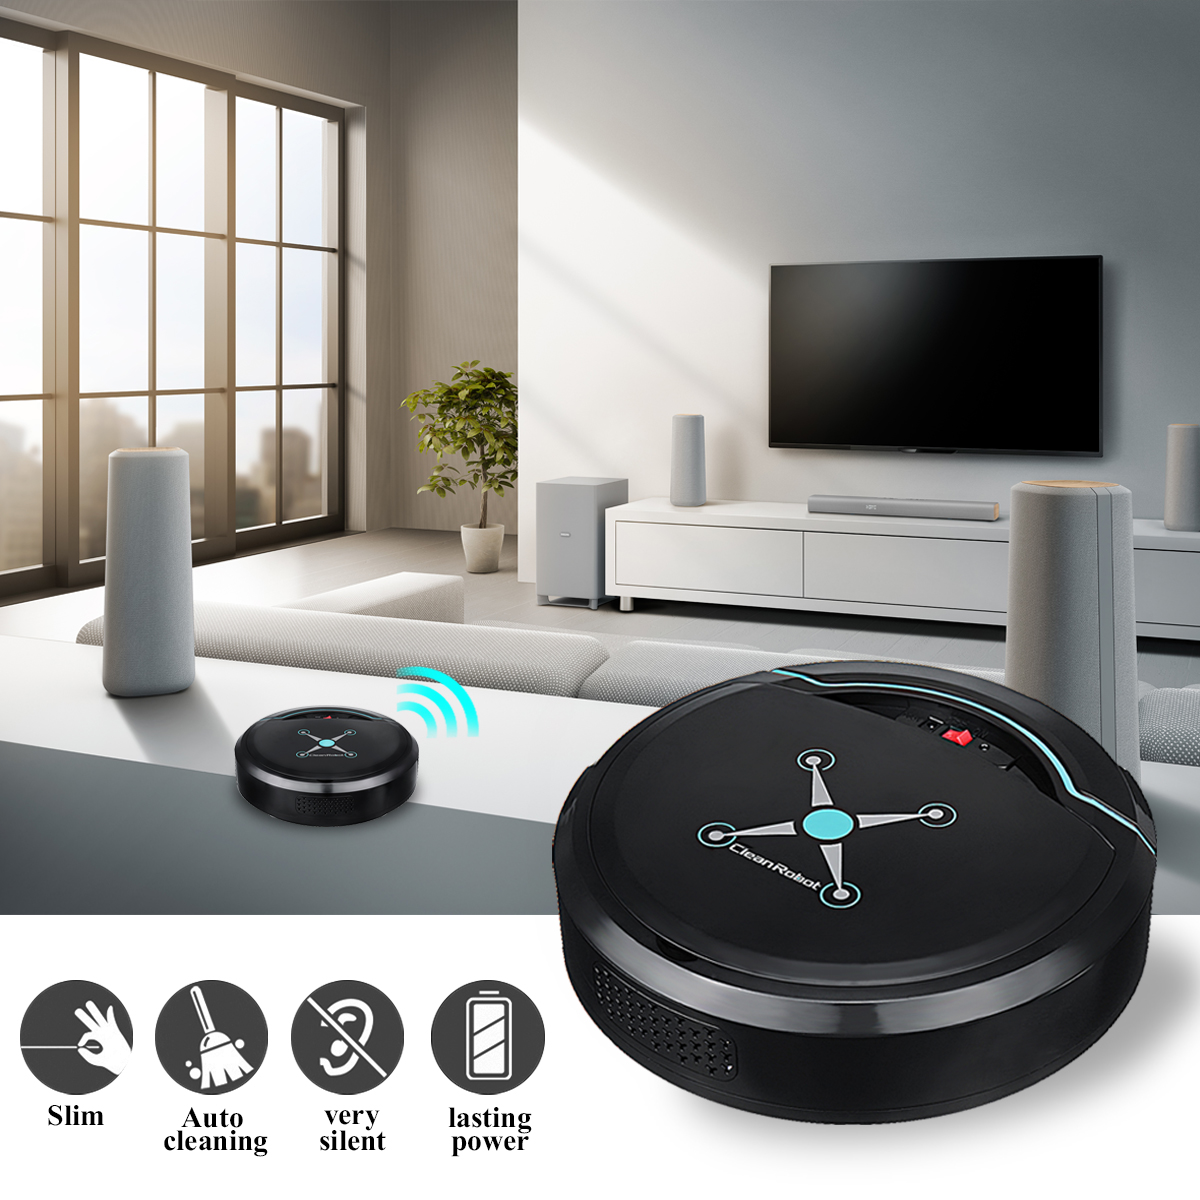 Home/Office Automatic Rechargeable Smart Robotic Robot Vacuum Cleaner,Auto Floor Sweeping Sweeper Machine,Pet Hair Dust Cleaning